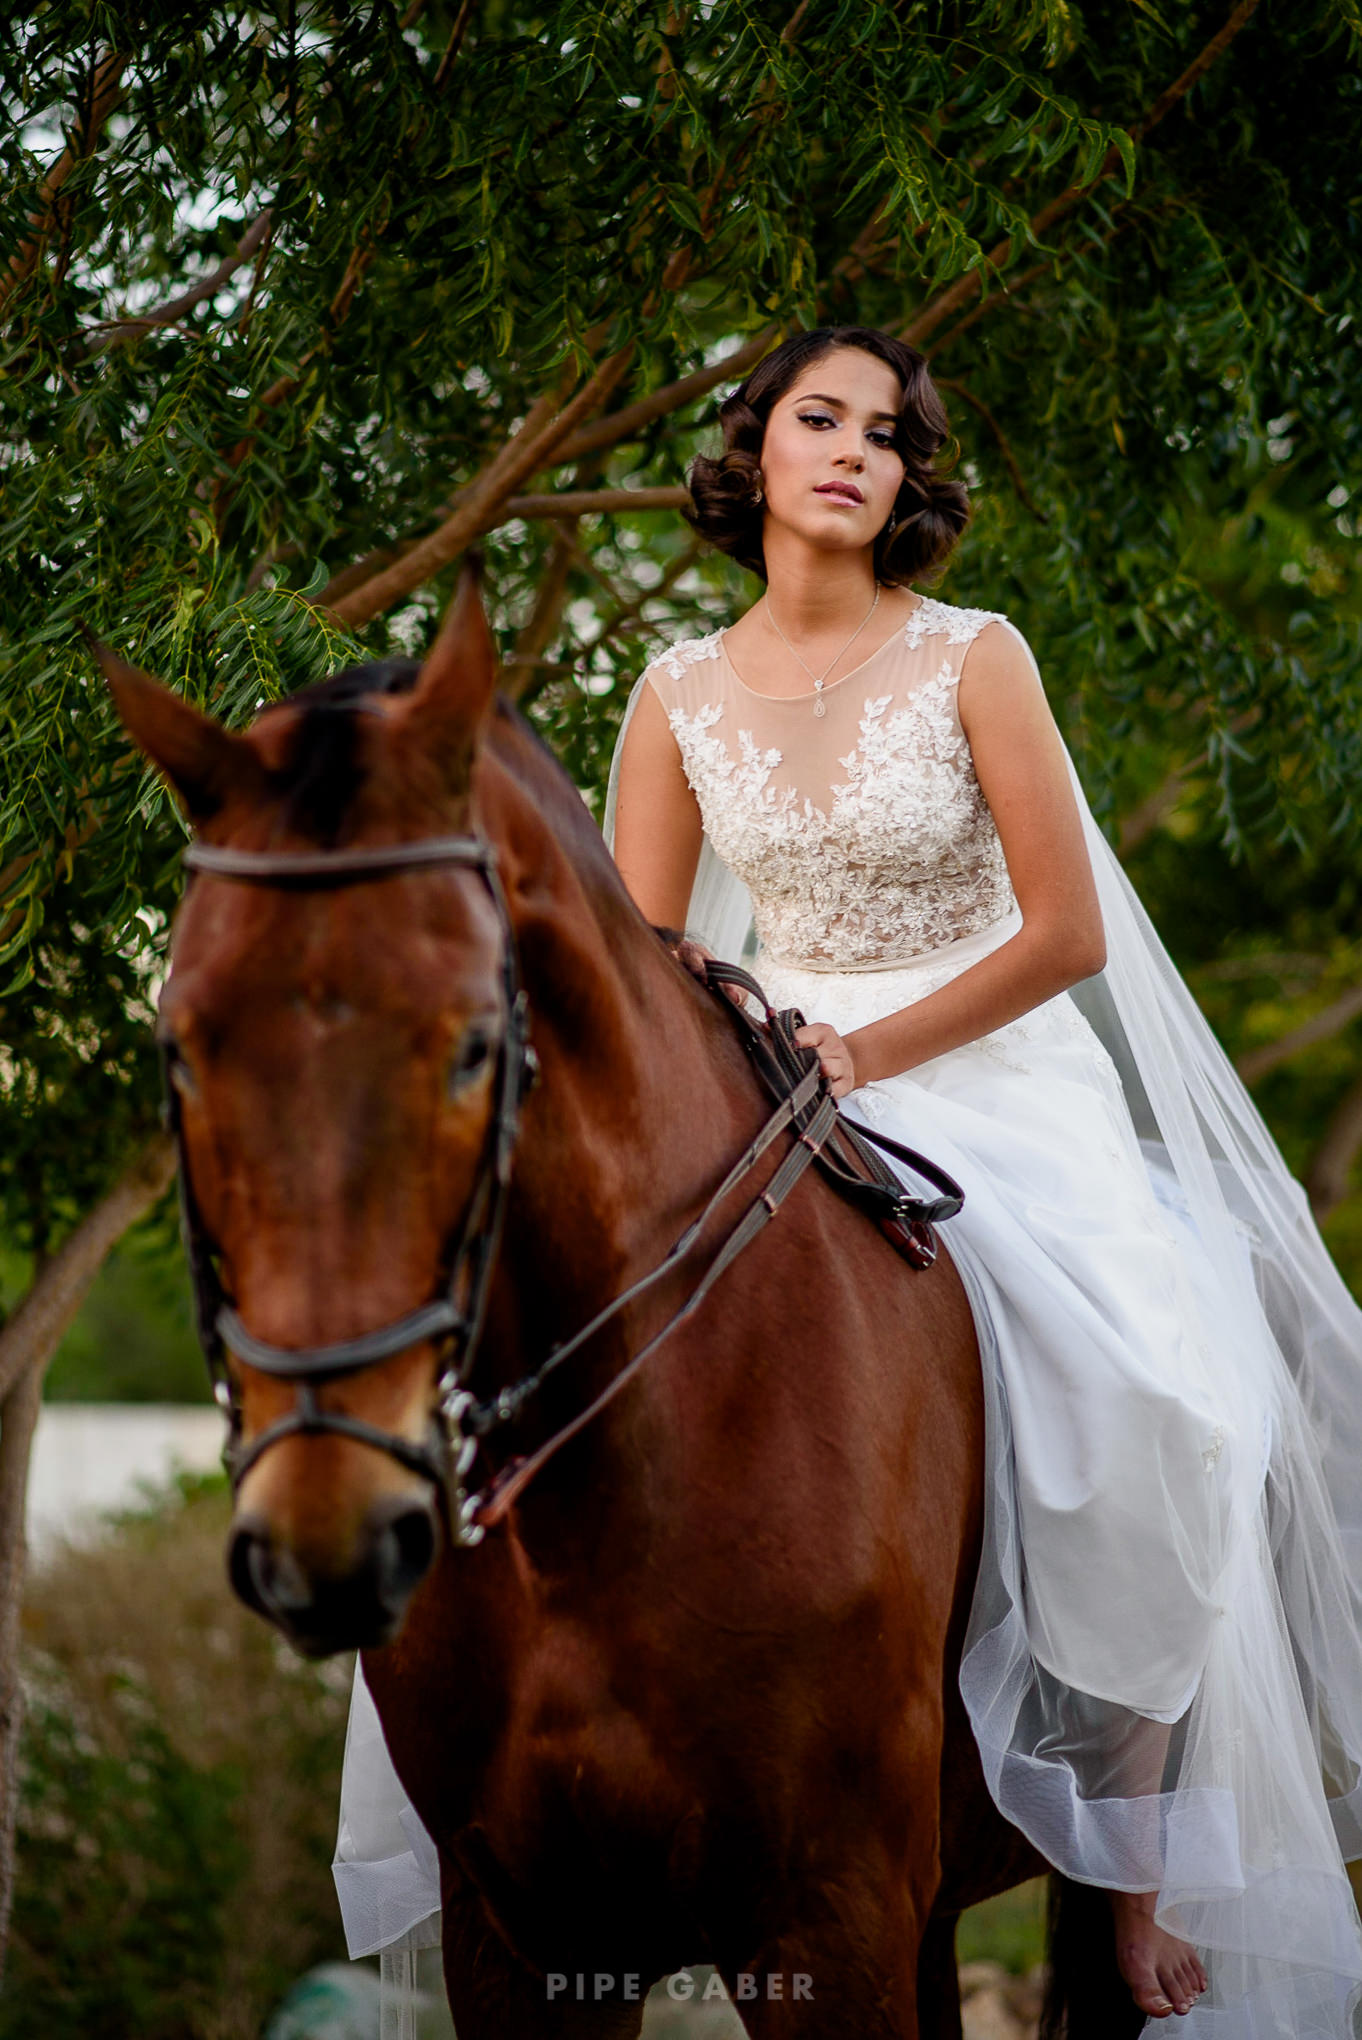 Trash_the_dress_horses_caballo_fotografia_merida_11.JPG